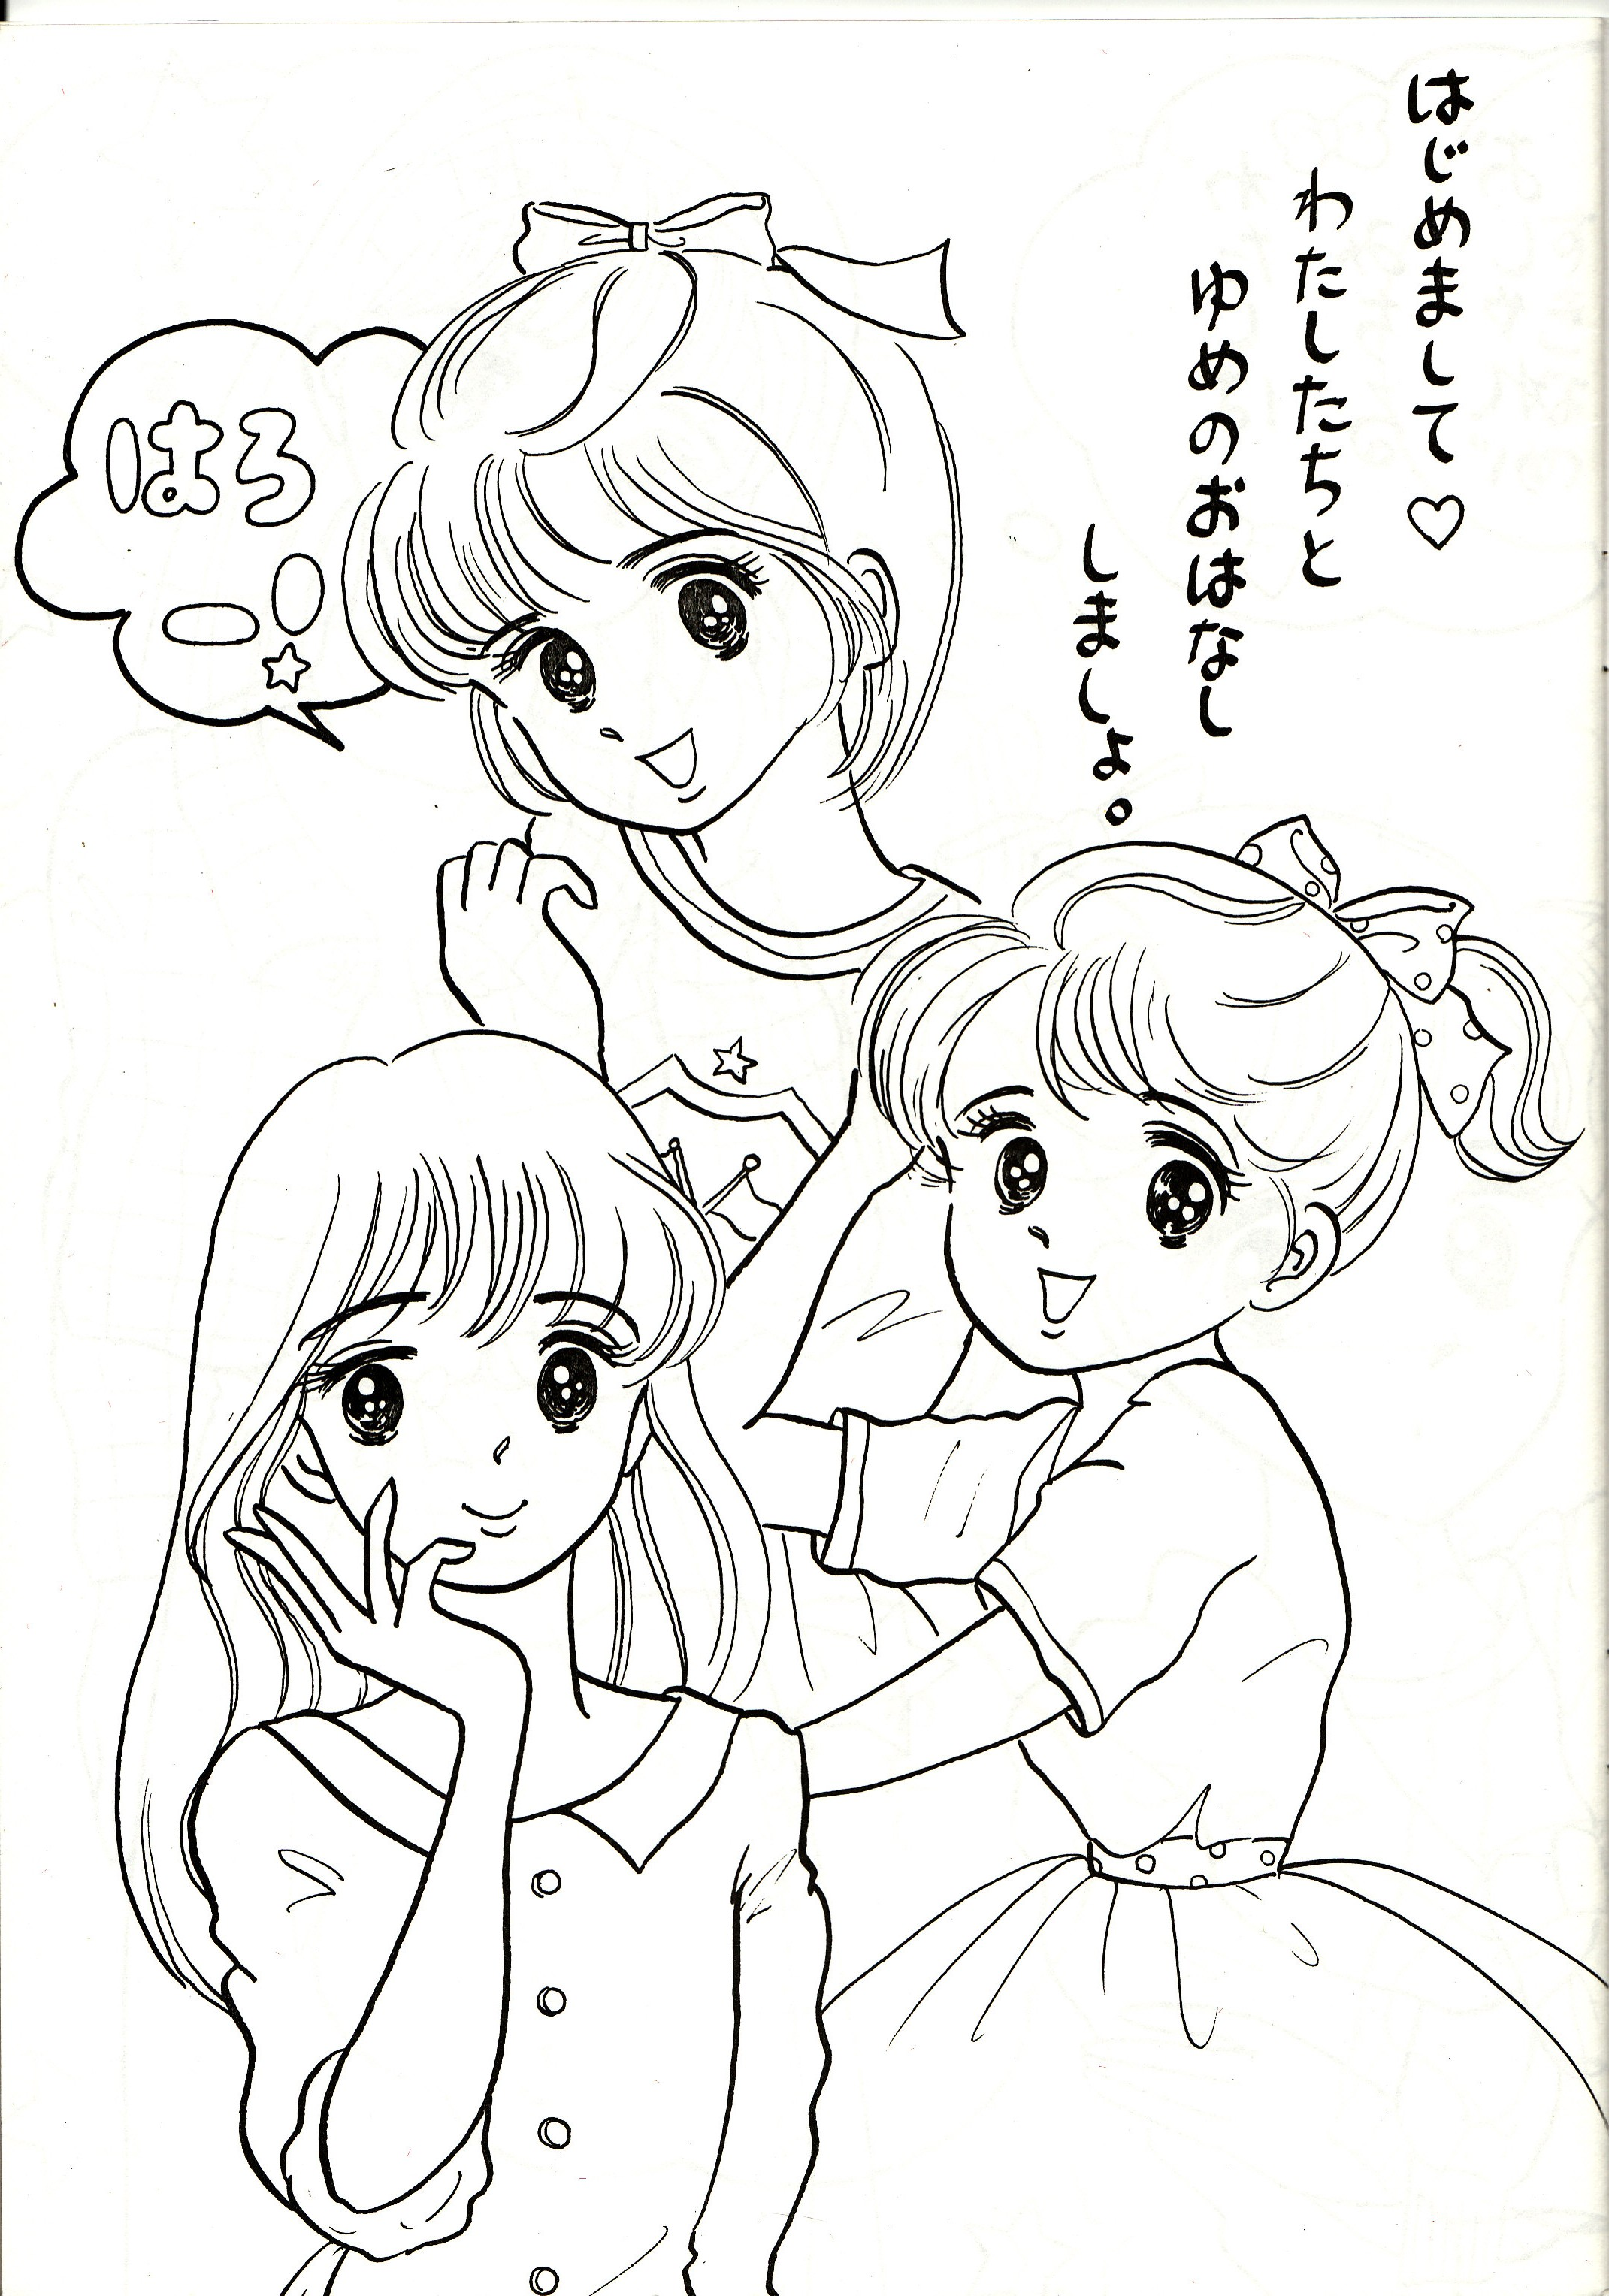 Best Friends Coloring Page From A Booklet Purchased At Dai Flickr Photo Sharing